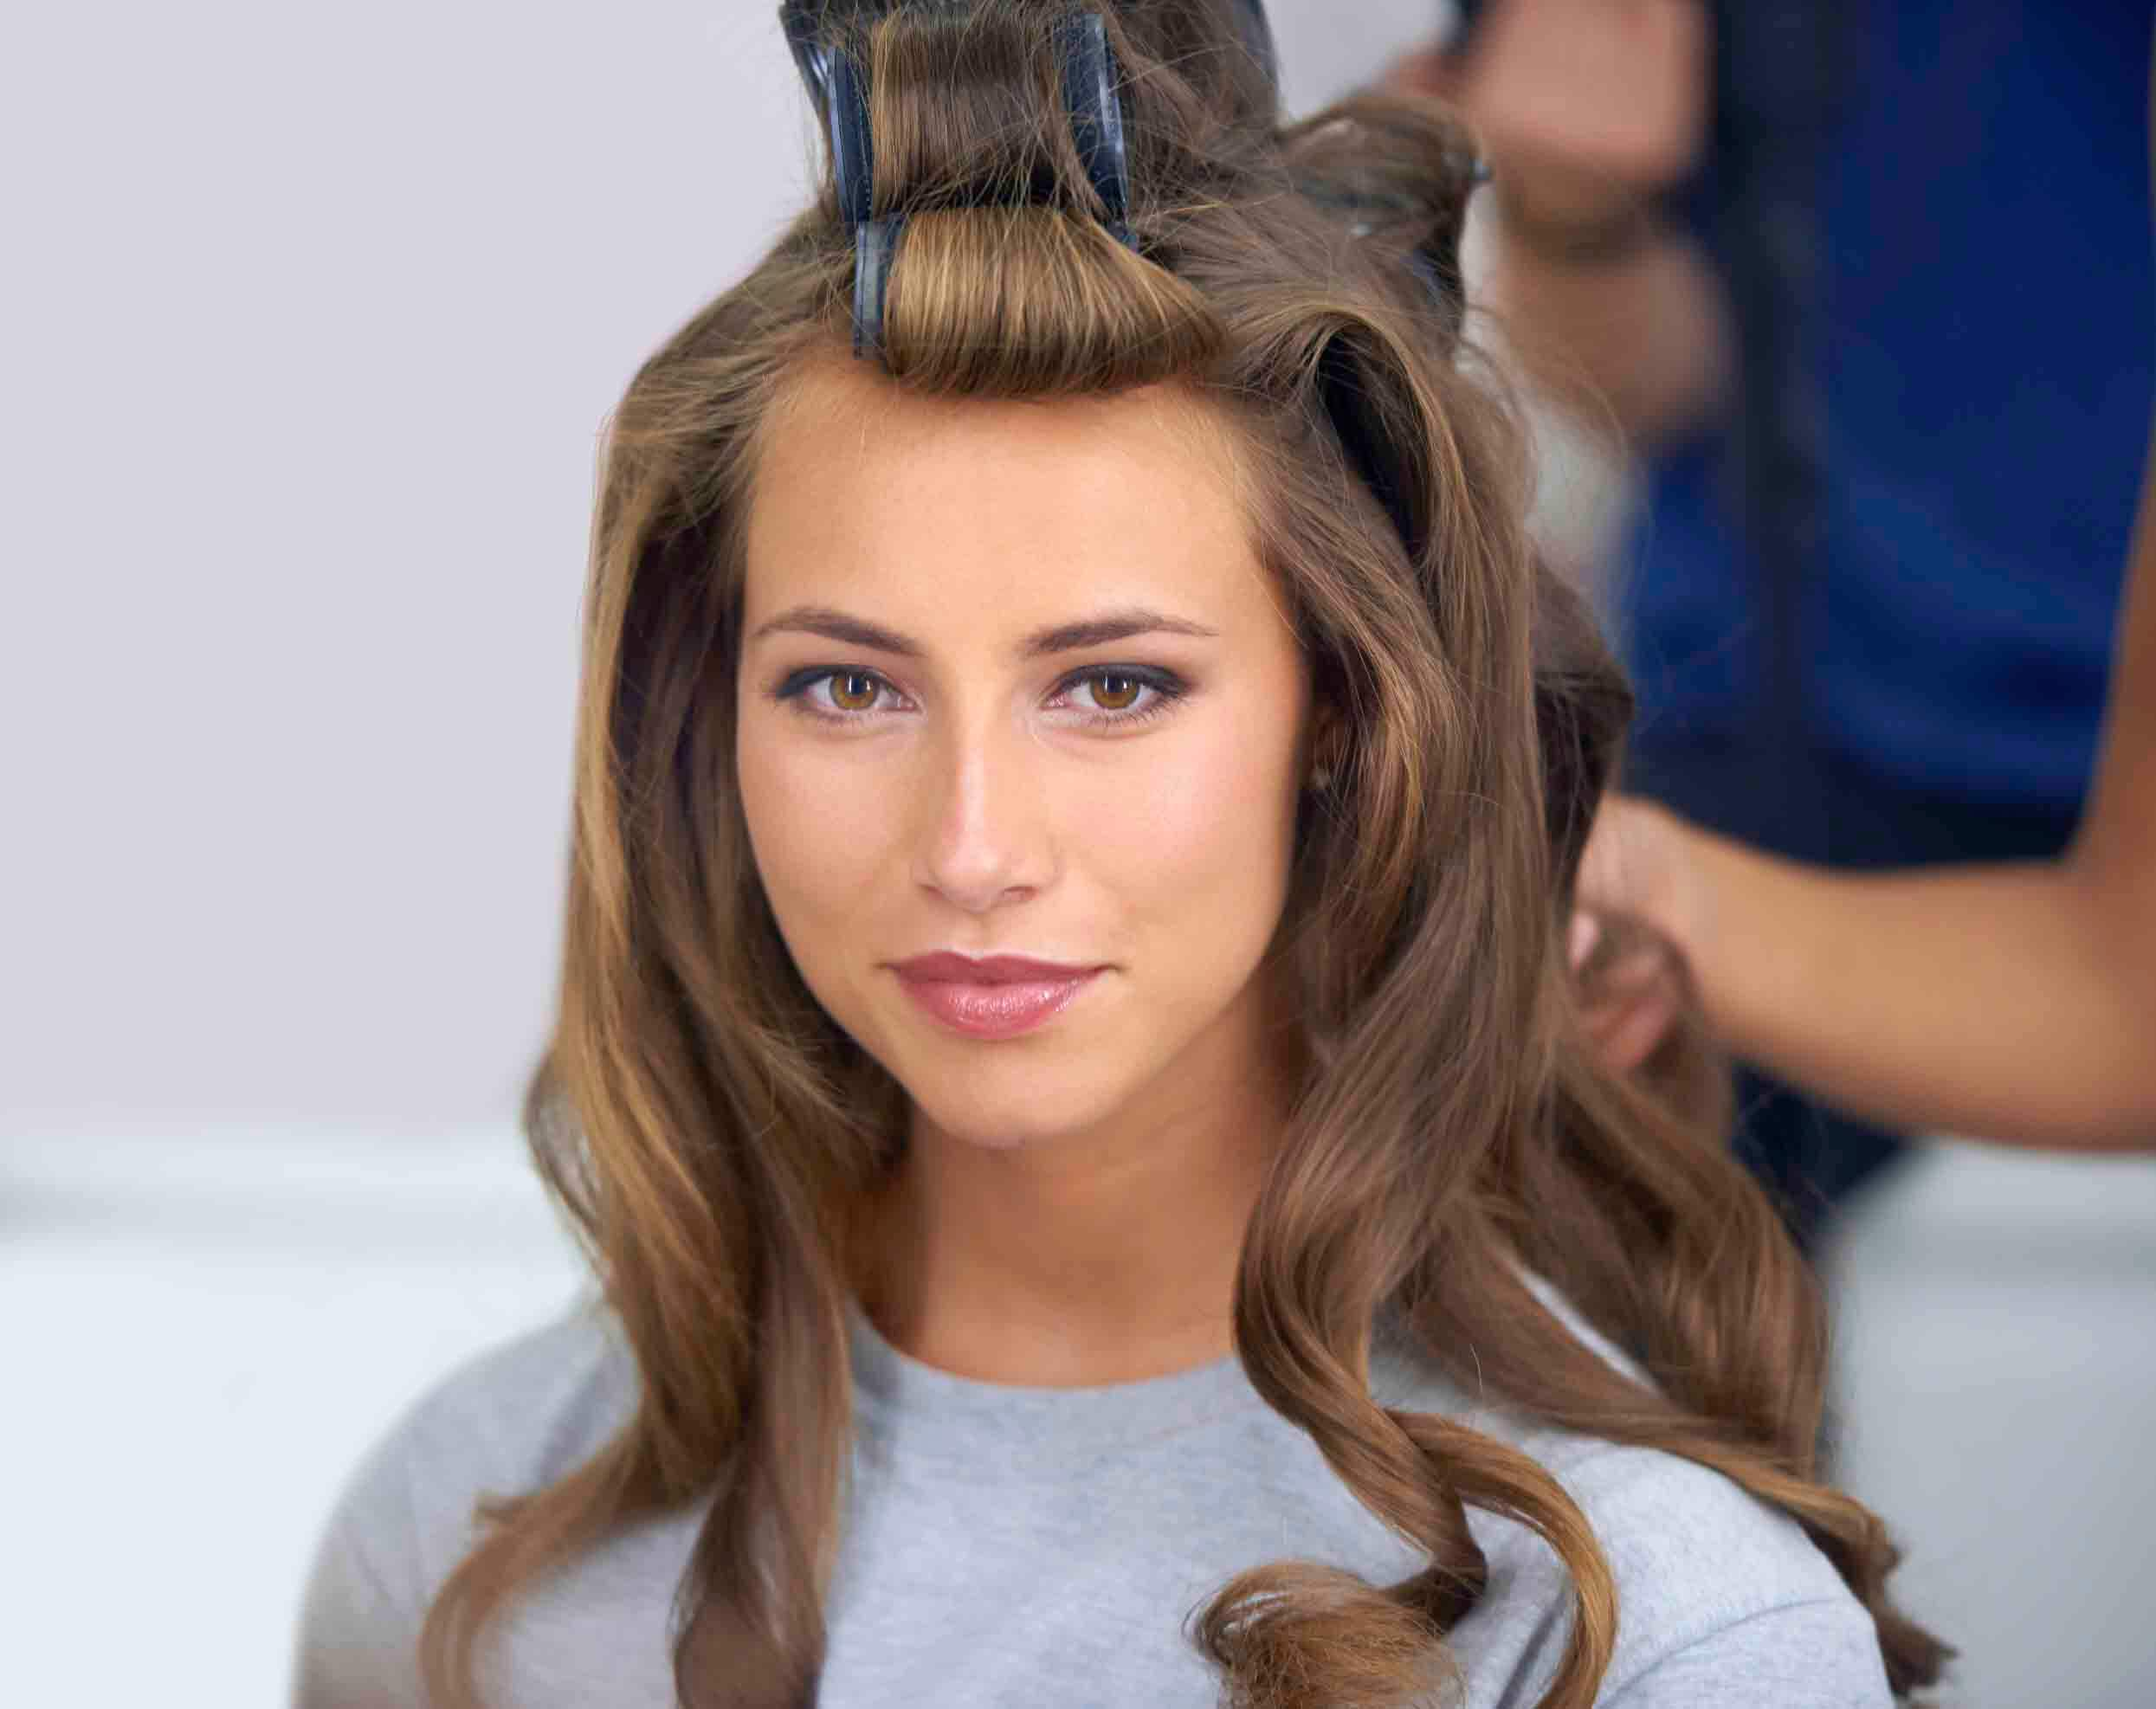 How to get thicker hair: Brunette woman with her hair in rollers, having her hair done